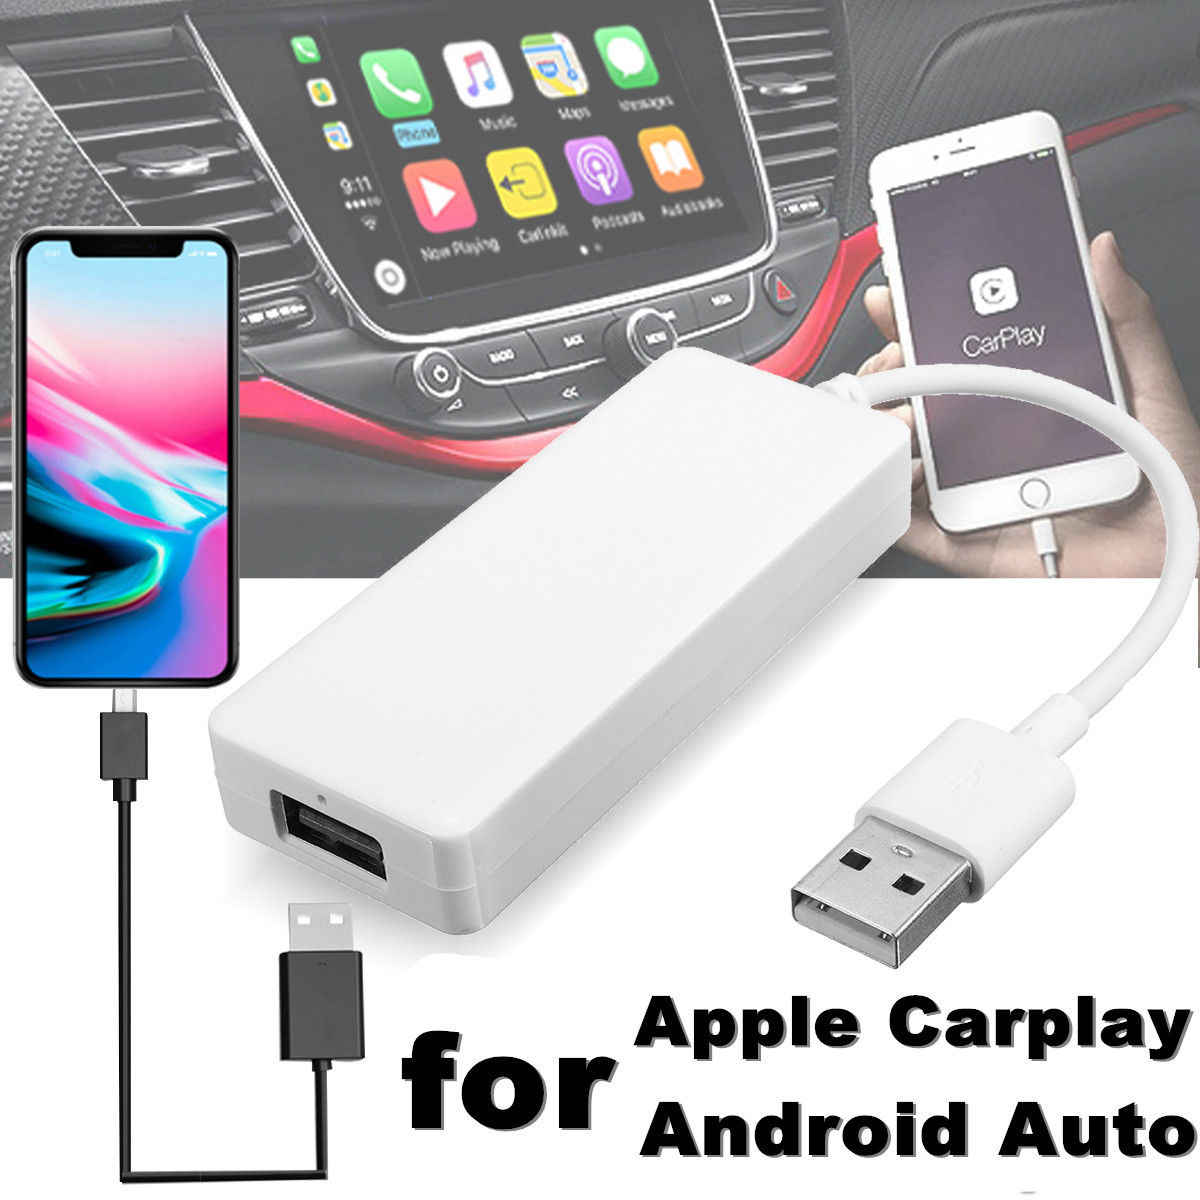 Car Link Dongle USB Portable Link Dongle Navigation Player Auto Link Dongle Smart Android Auto for Apple CarPlay